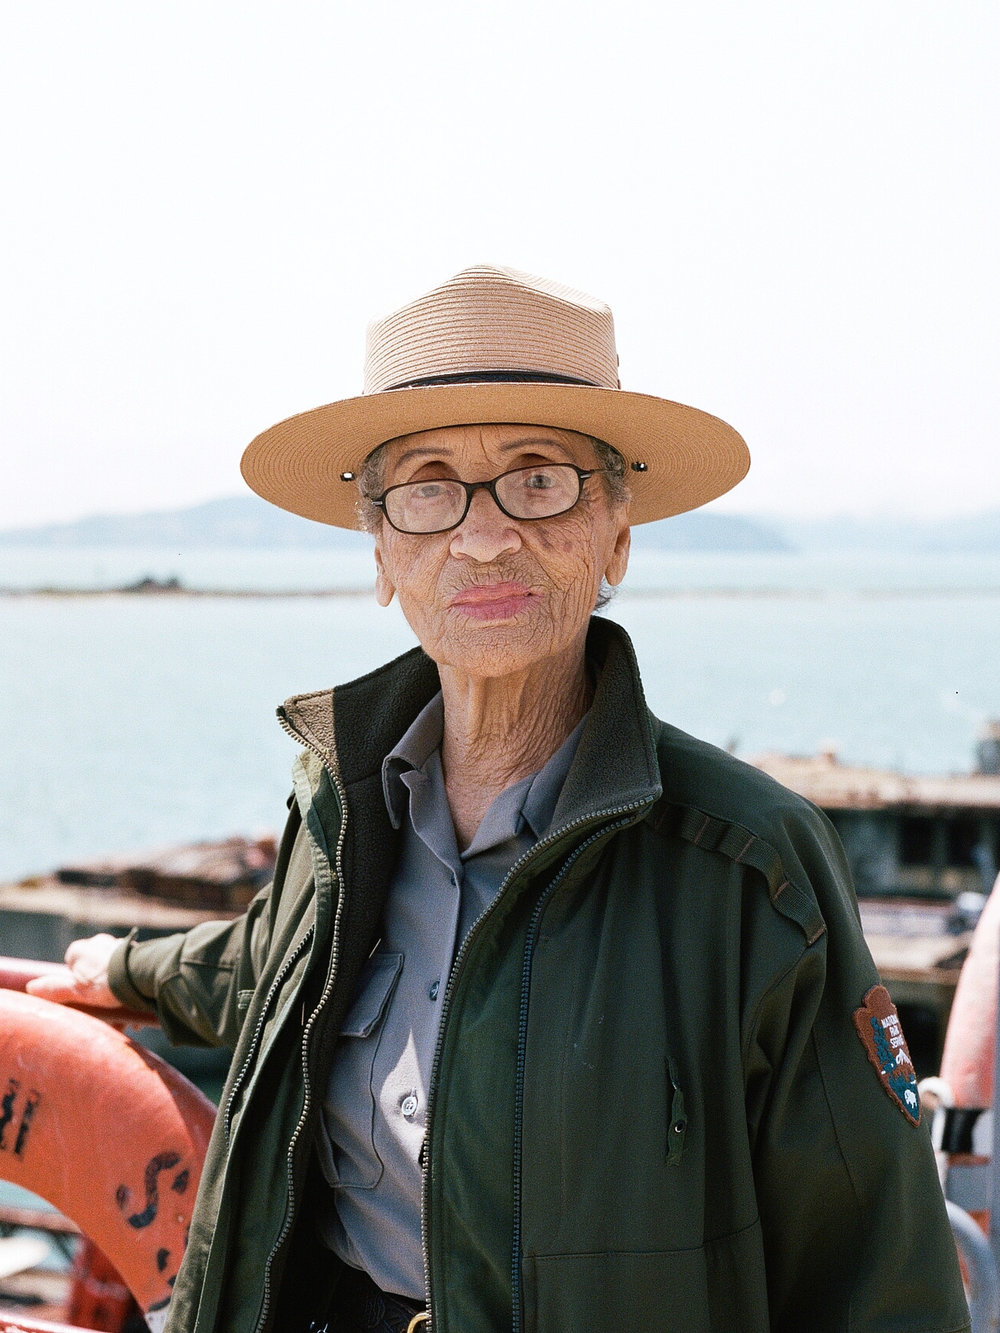 MEETINGS: BETTY REID SOSKIN   At 95, Betty is the oldest park ranger in America. Through her work she tells her own personal story which reflects the wider social issues of America through the years she has lived.  Click through to find out more.